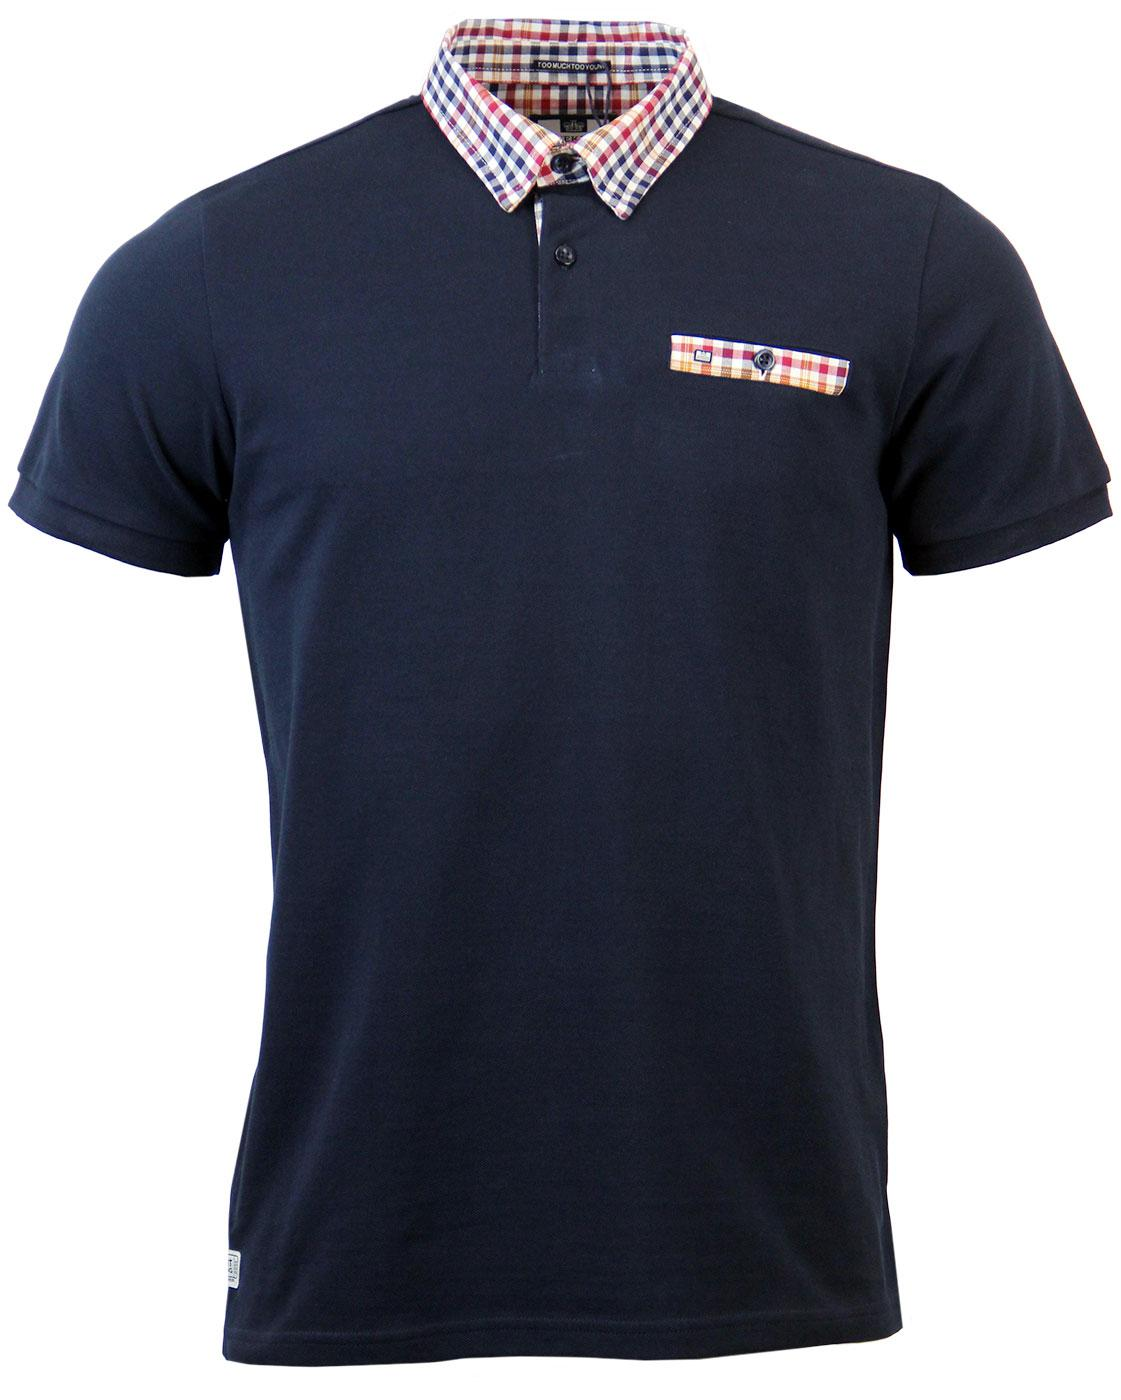 Baron WEEKEND OFFENDER Mod Shirting Collar Polo